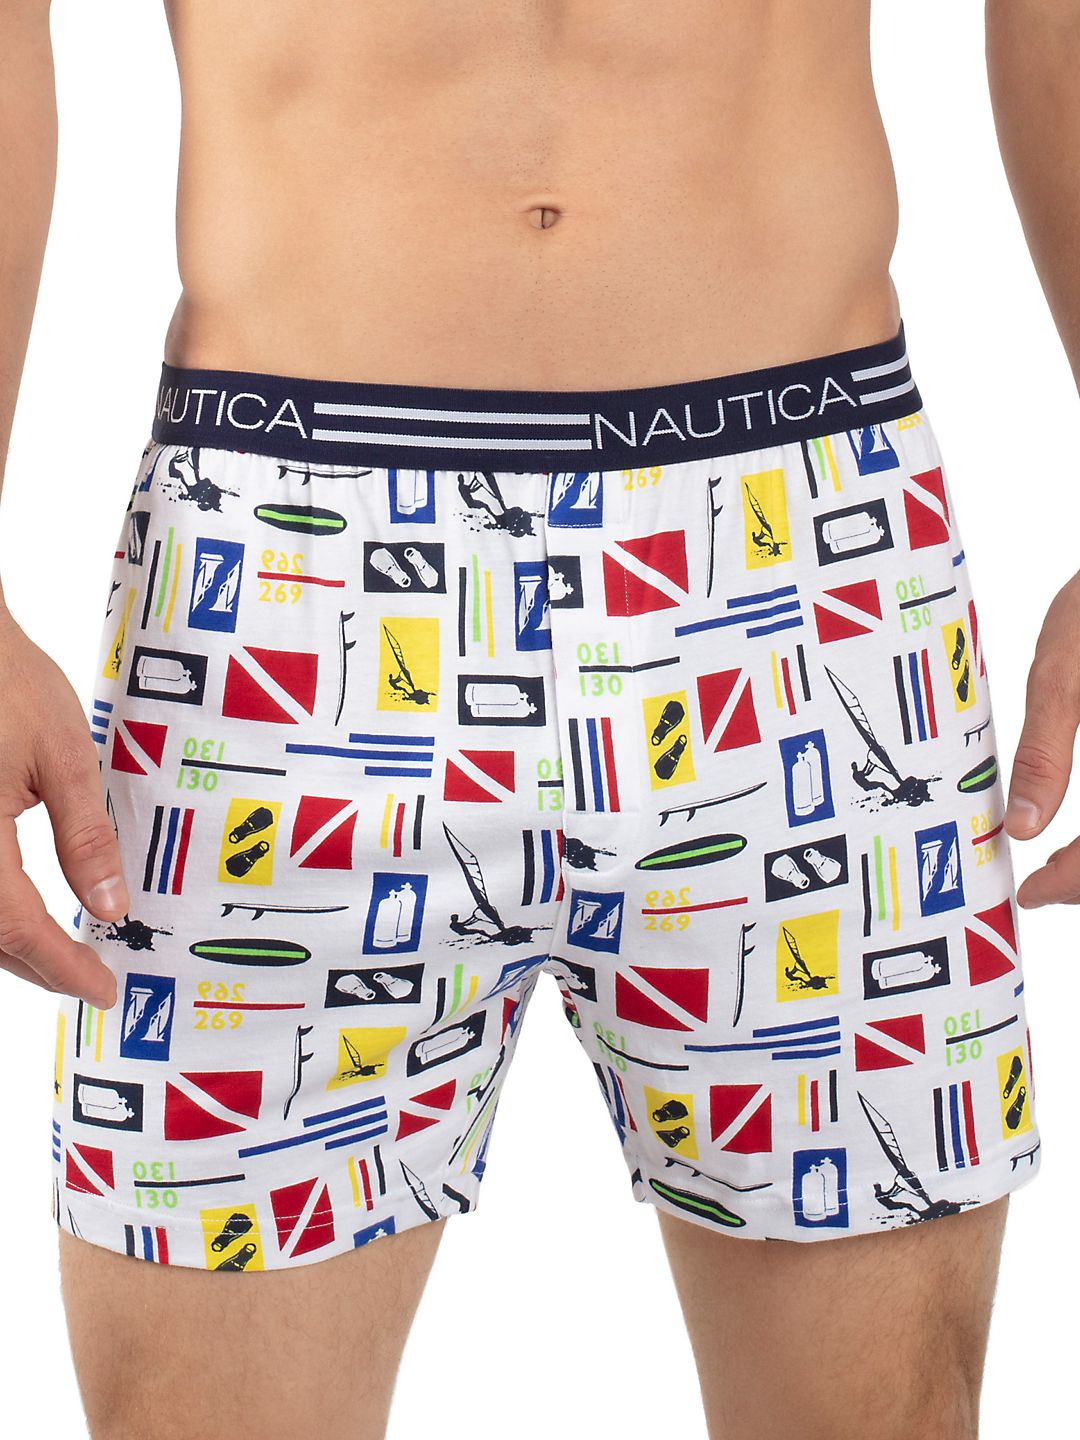 Nautica H70107 100% Cotton Loose Knit Solid Boxer